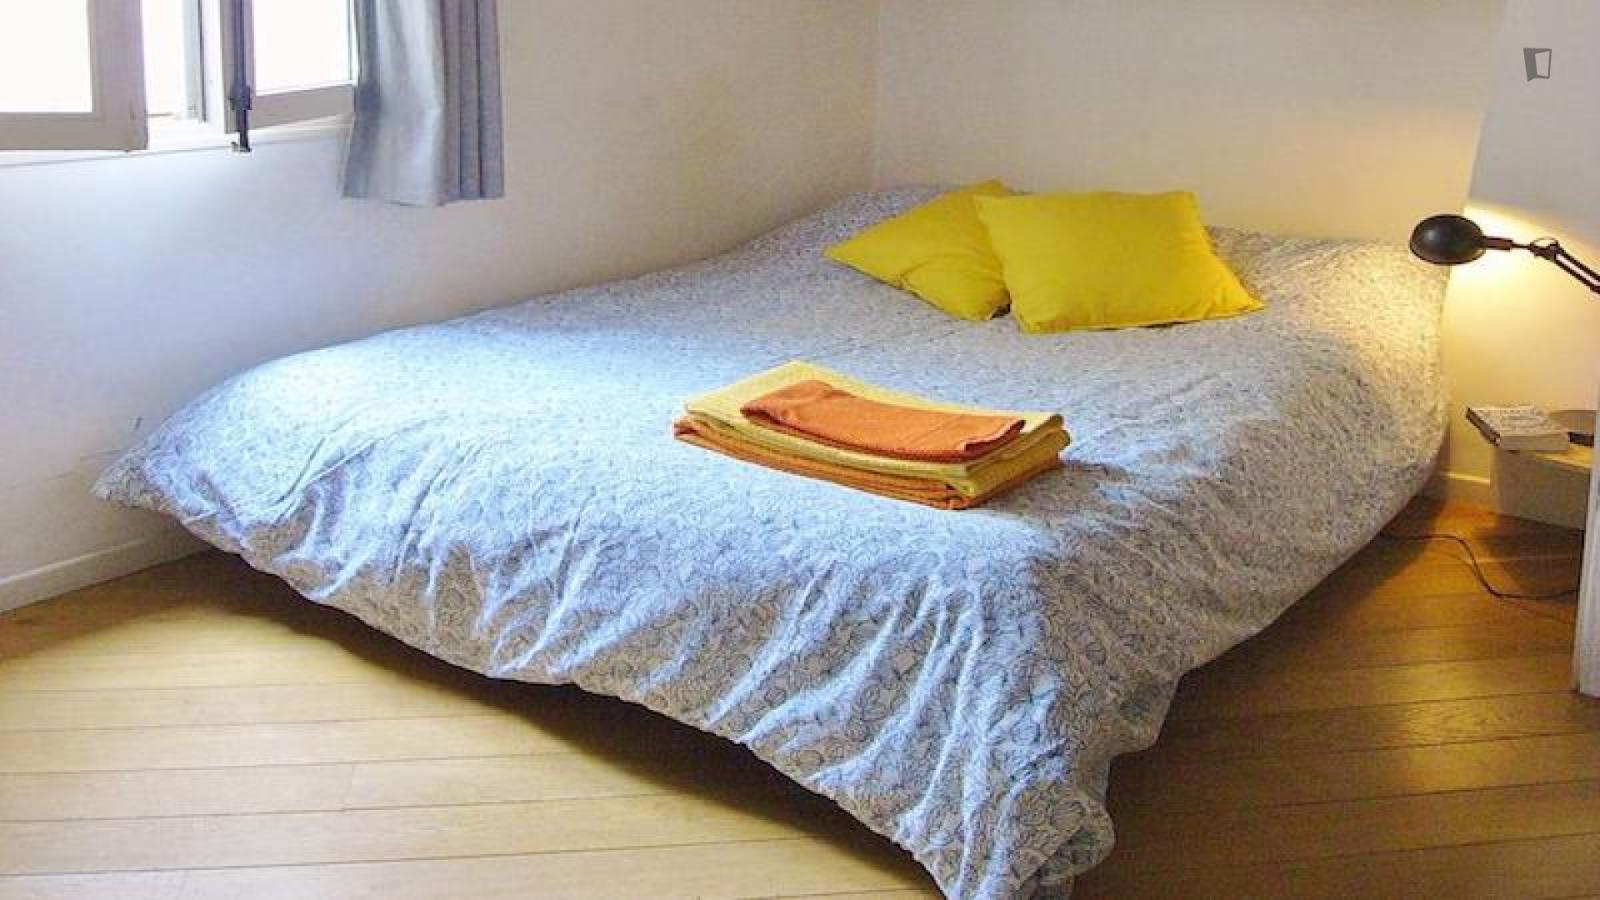 Rue Boutarel - 1310EUR / month